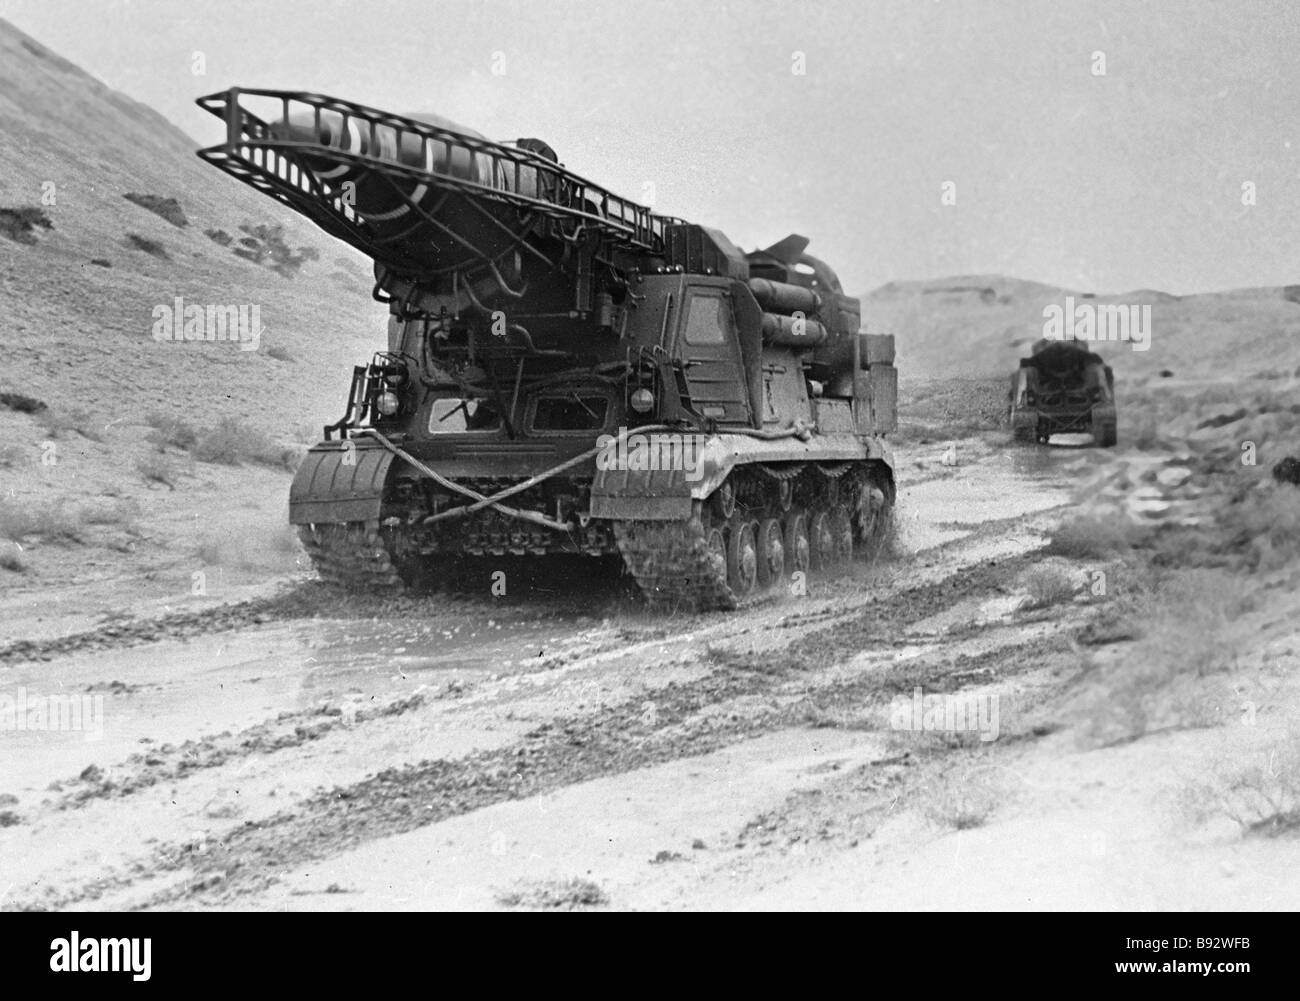 Missile launchers are being moved to the launching site during military exercise - Stock Image